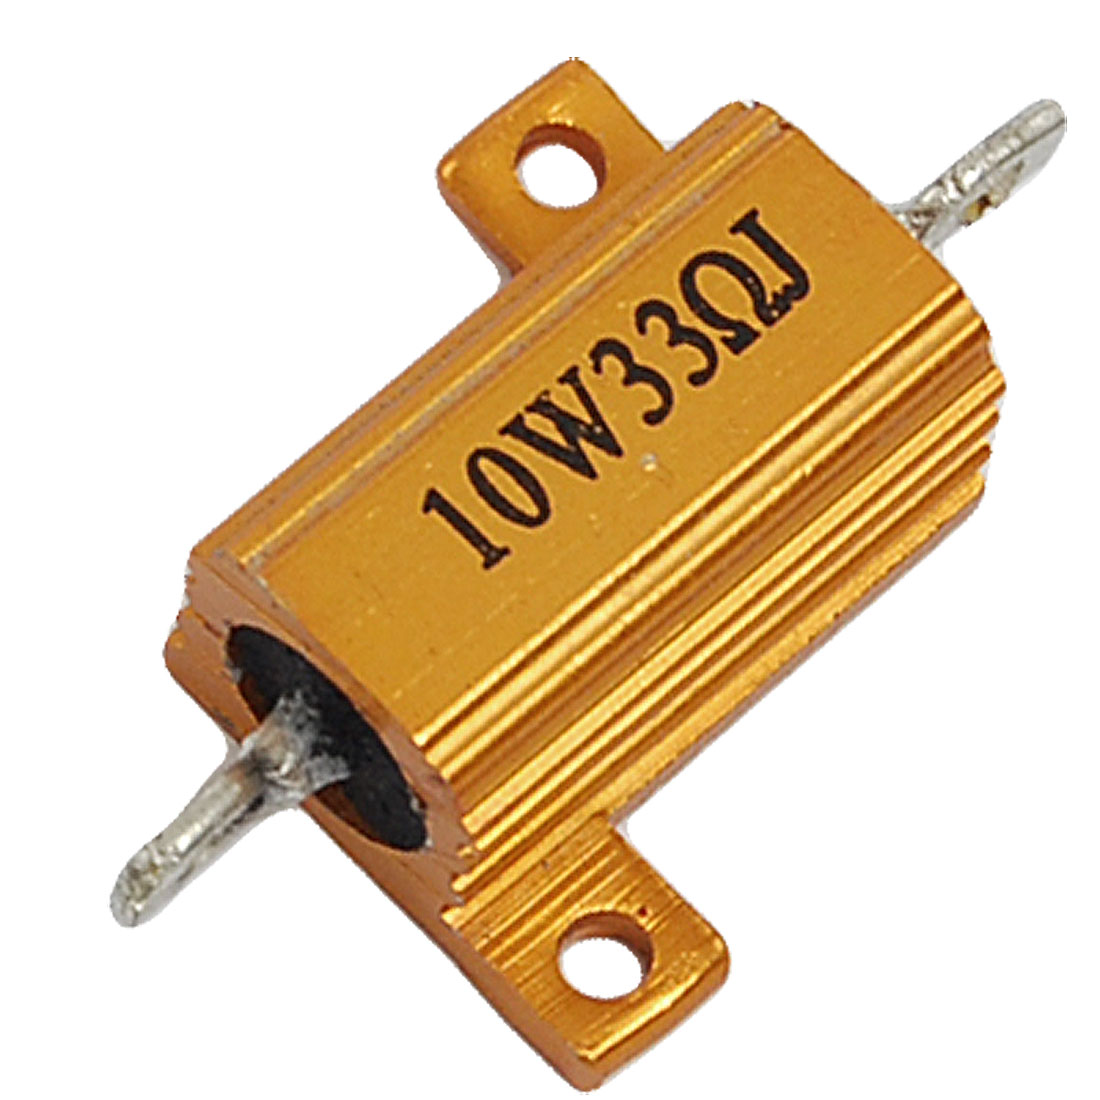 10W 5% 33 Ohm Gold Tone Aluminum Shell Screw Tabs Mounted Resistor